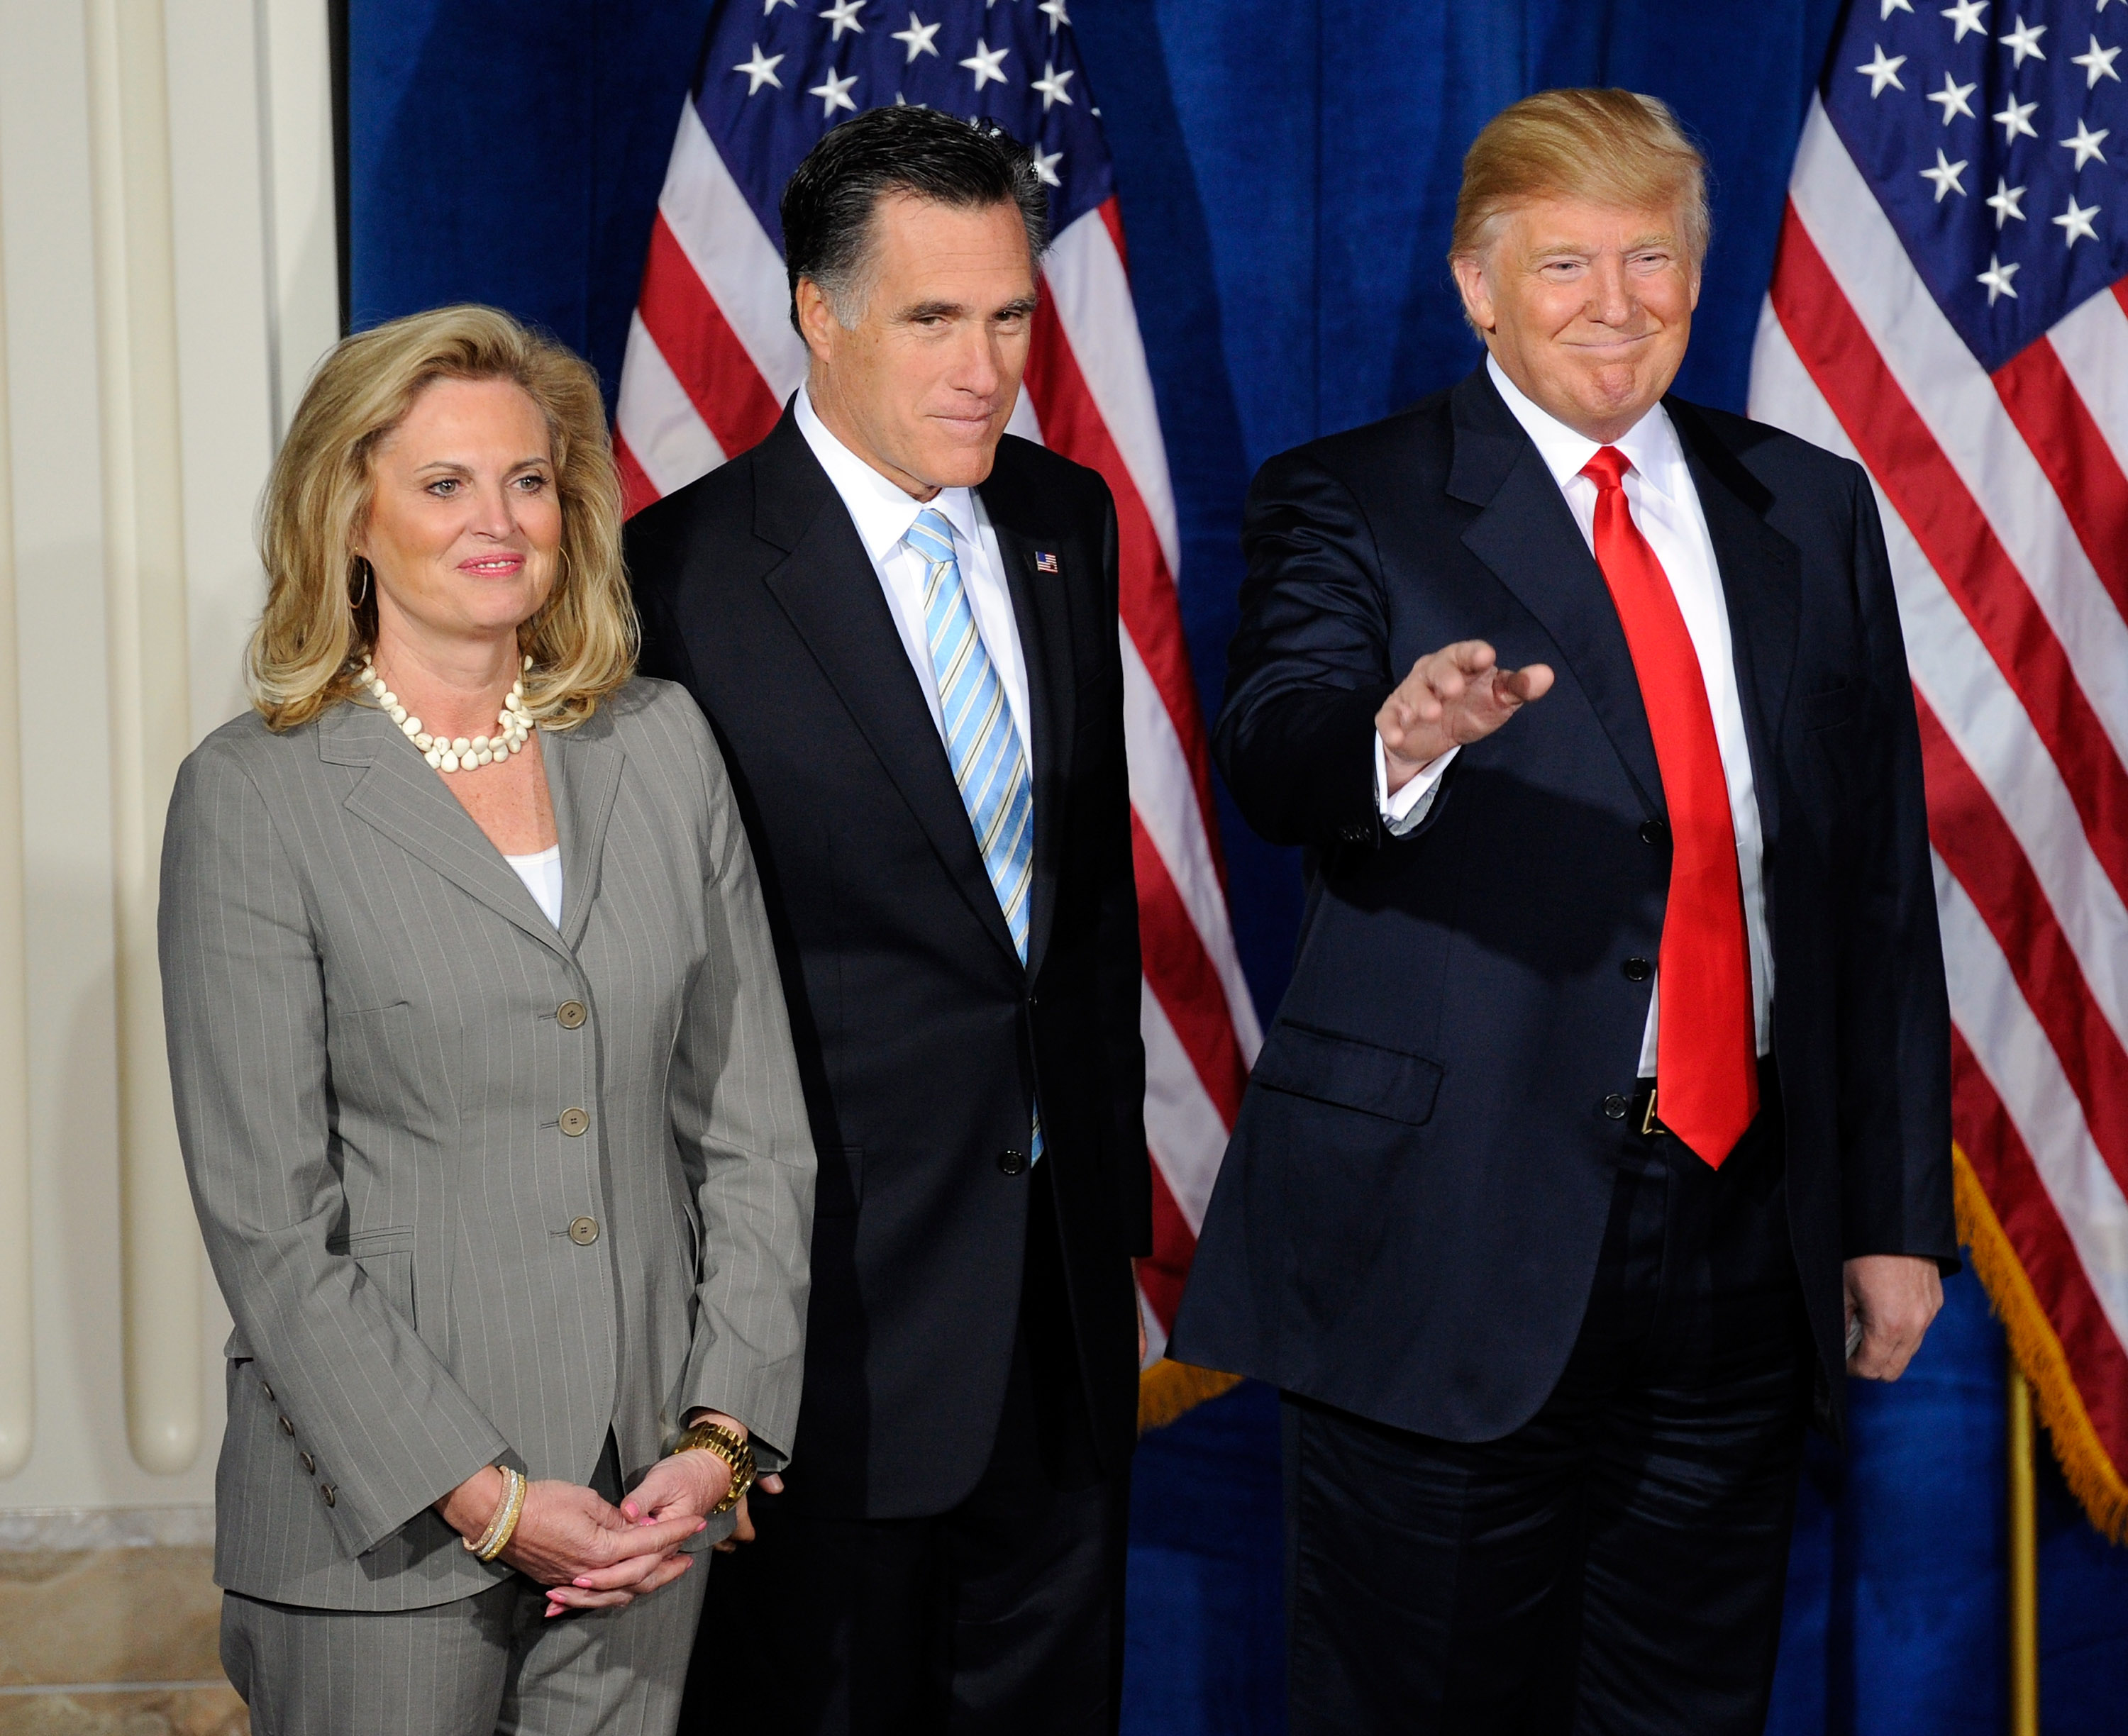 Donald Trump appears at a news conference to endorse Republican presidential candidate, former Massachusetts Gov. Mitt Romney as his wife Ann Romney looks on at the Trump International Hotel & Tower Las Vegas in Las Vegas on February 2, 2012.